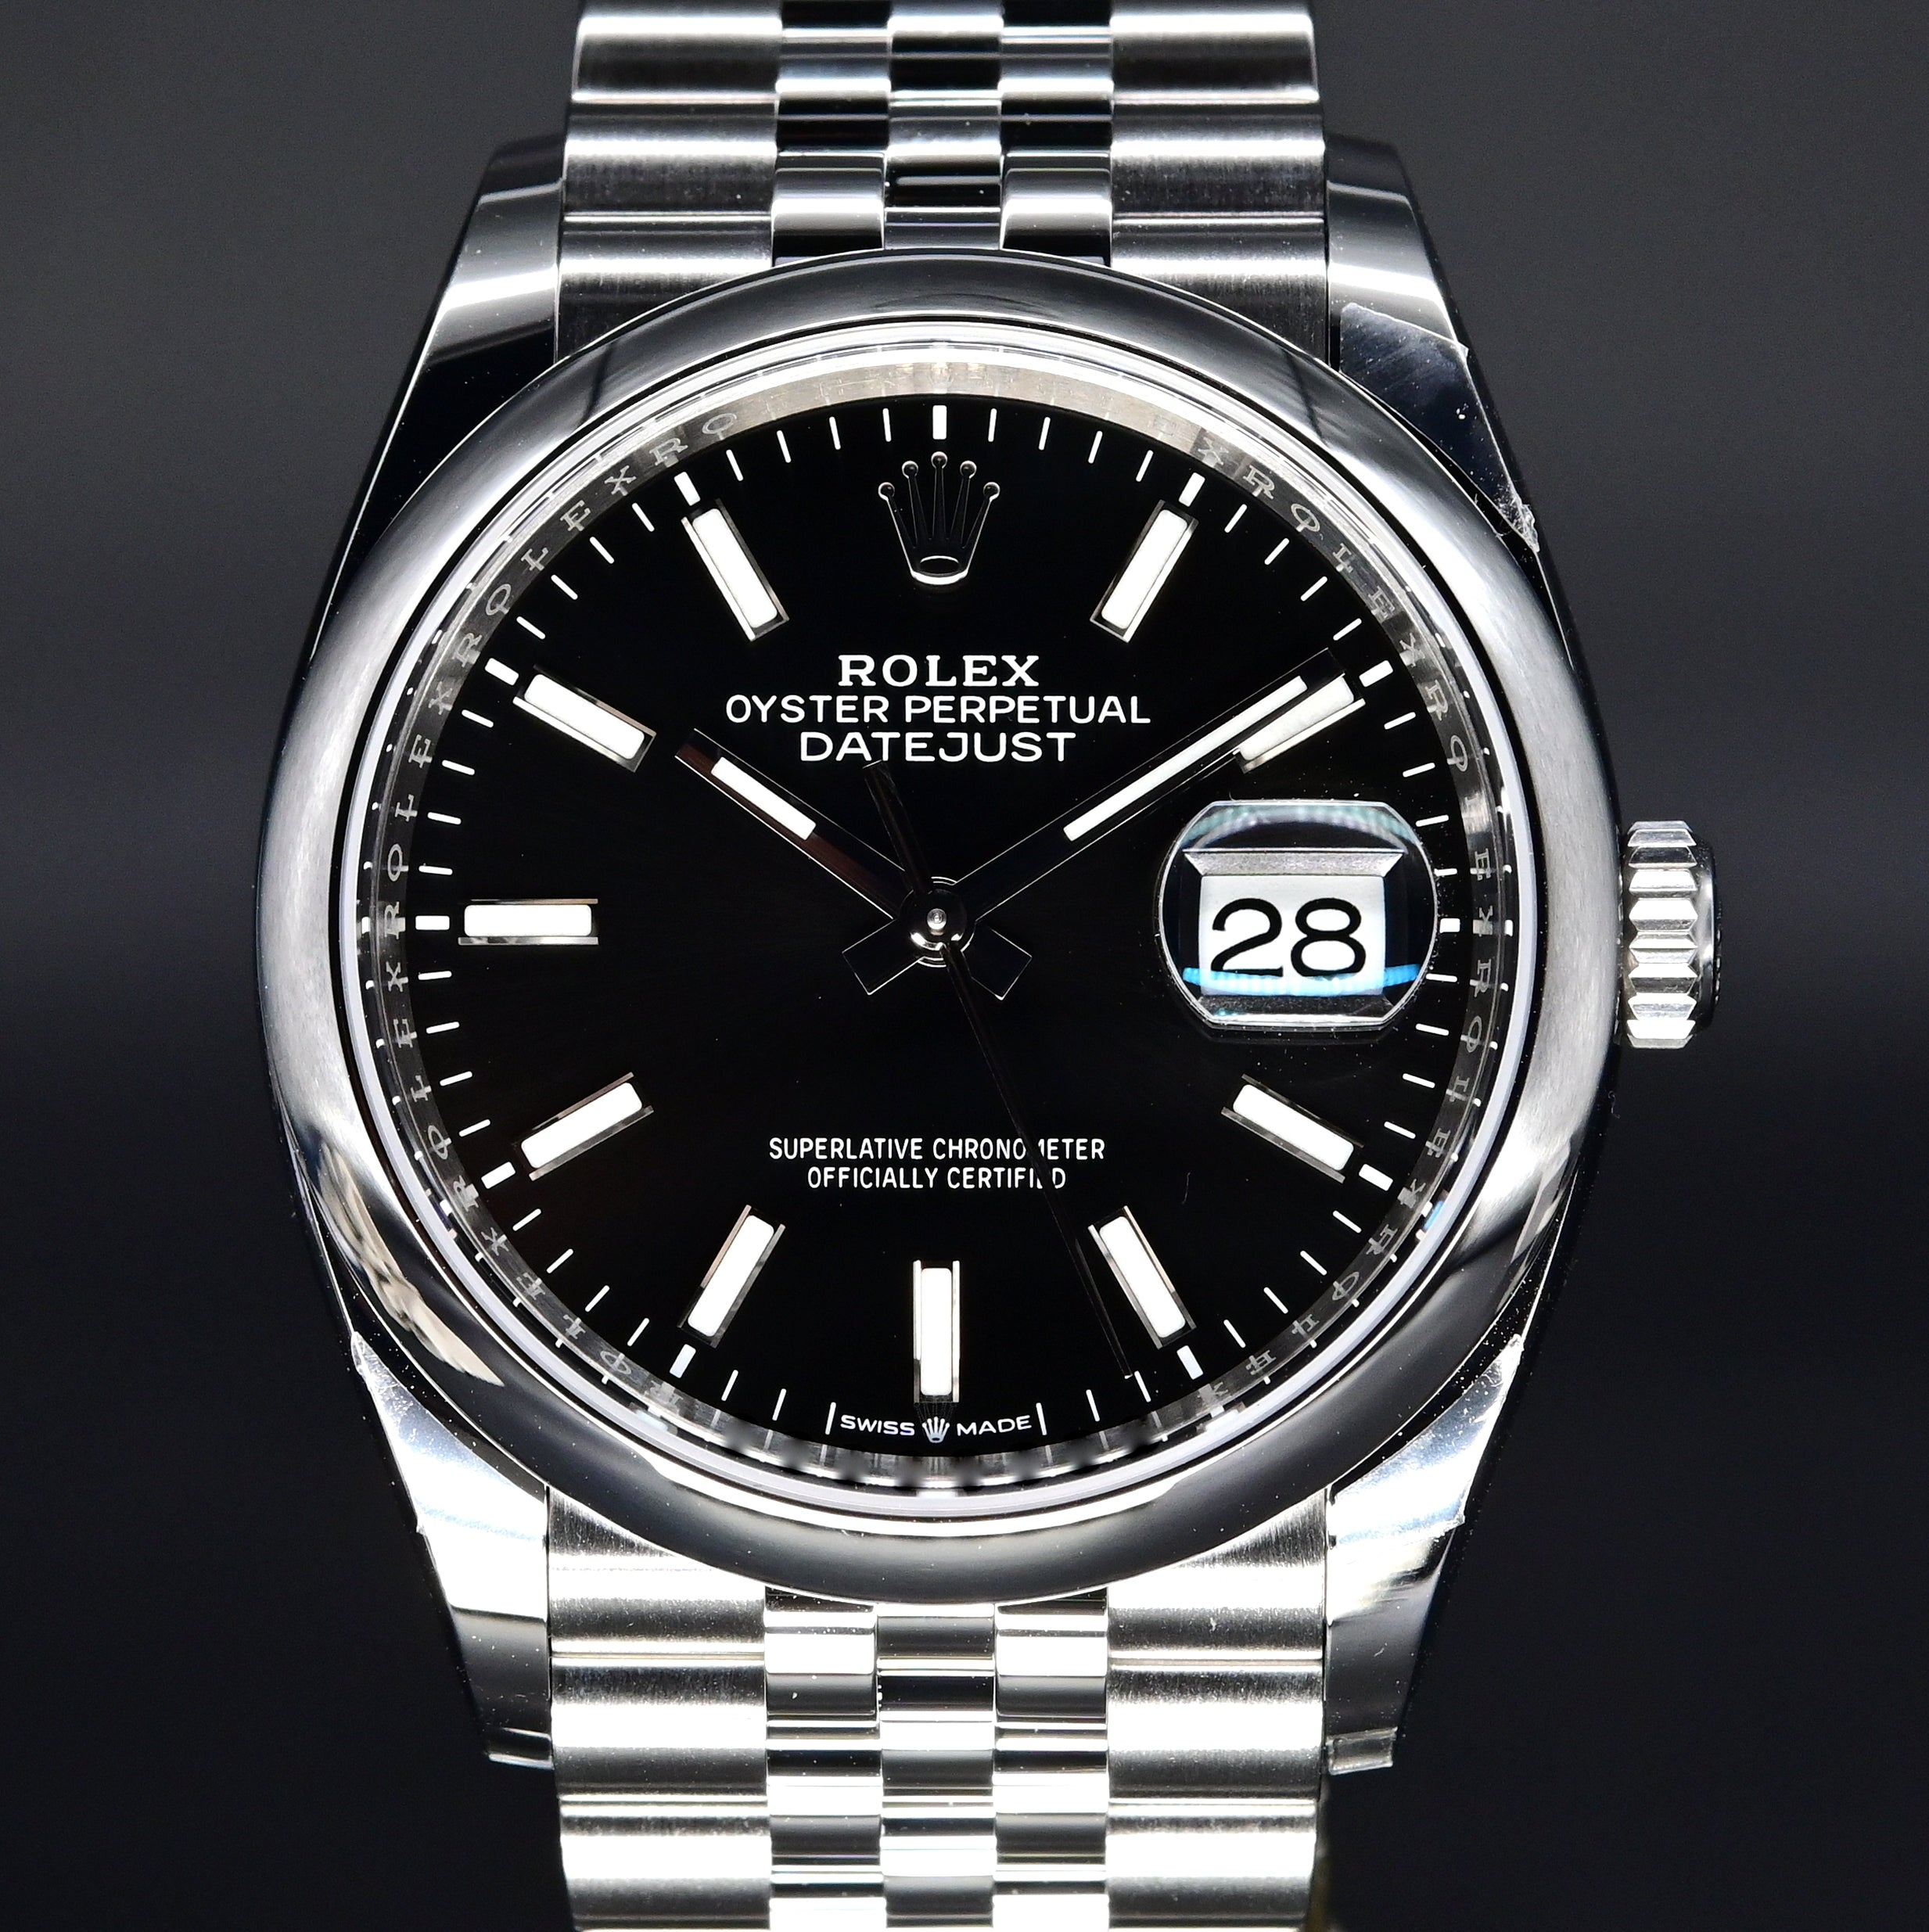 [Brand New Watch] Rolex Datejust 36 36mm 126200 Black Index Dial (Jubilee Bracelet)